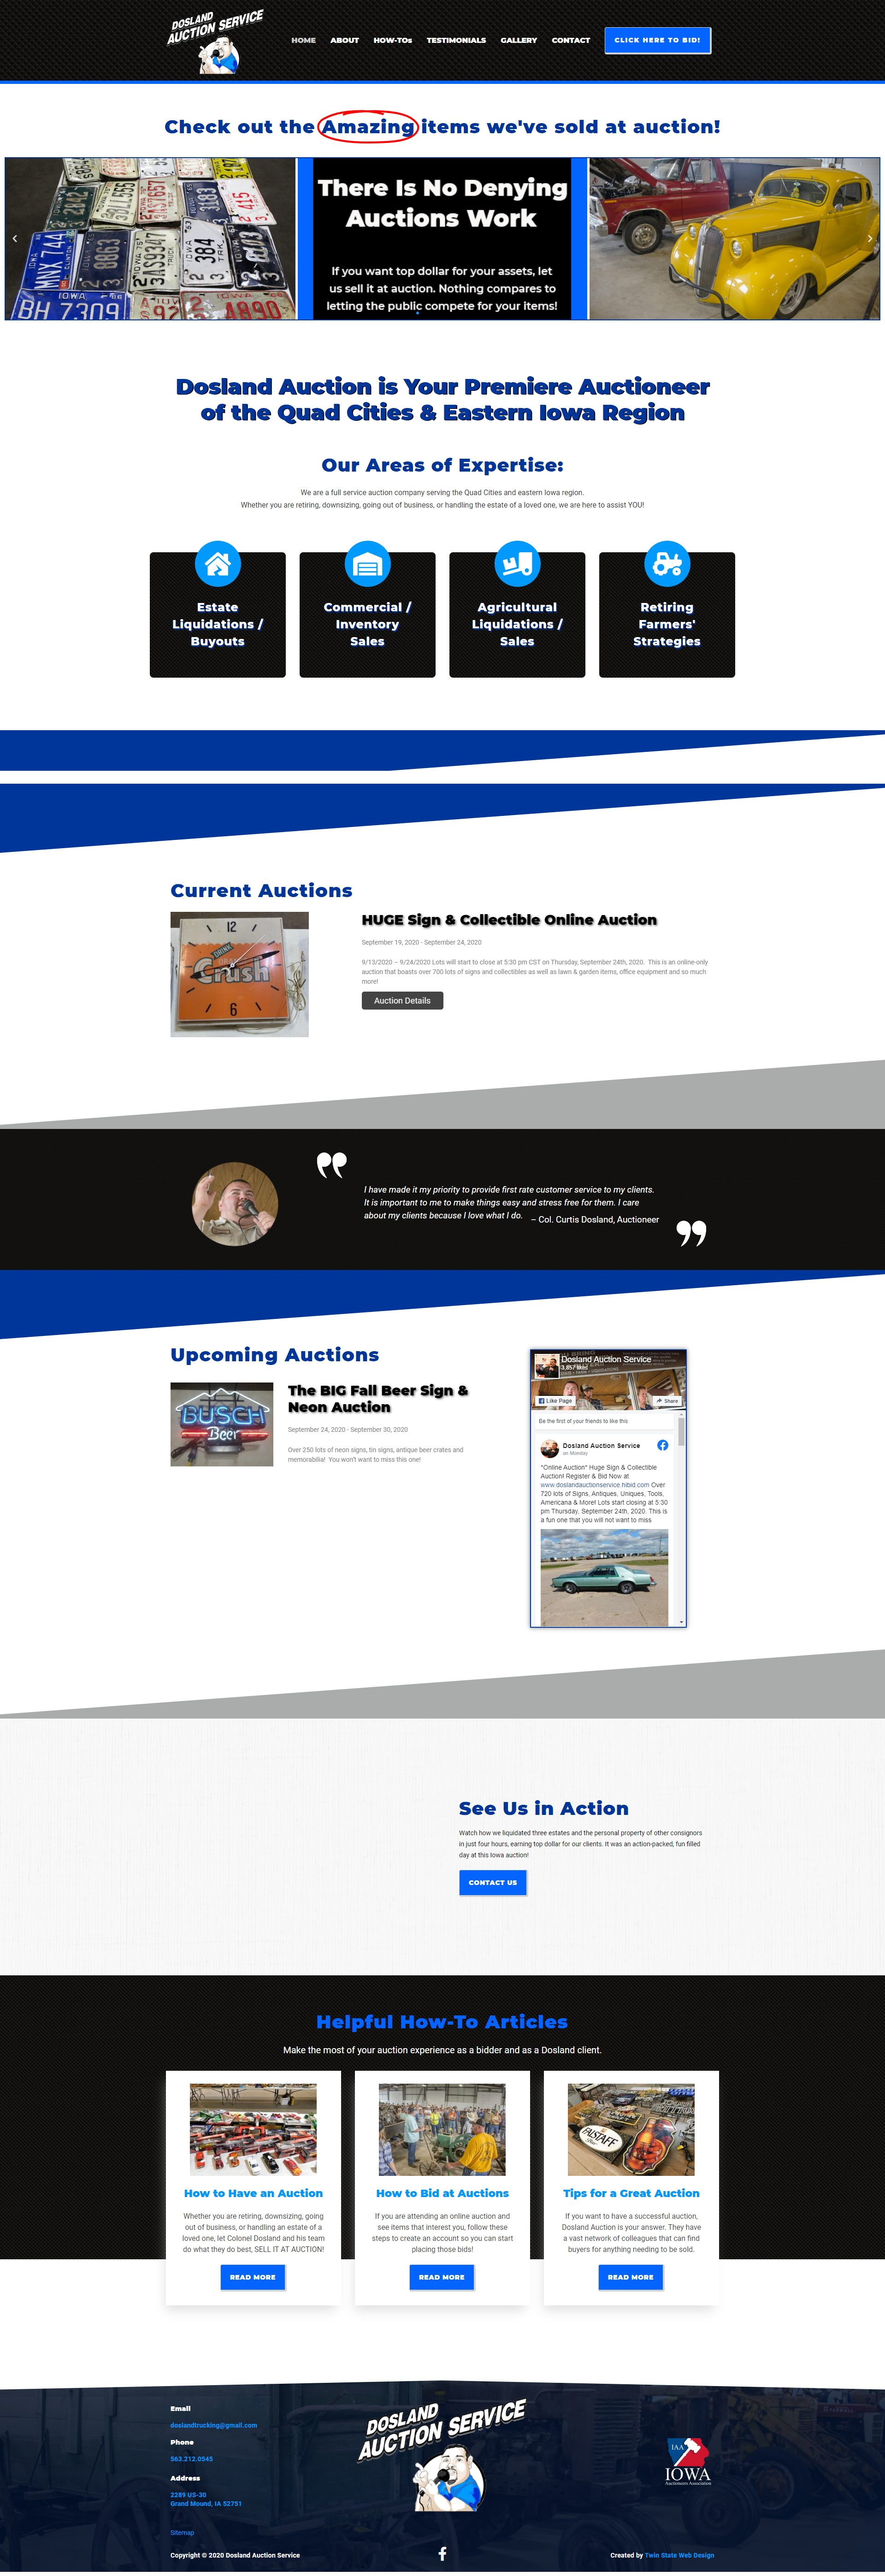 full home page view of Dosland Auction site